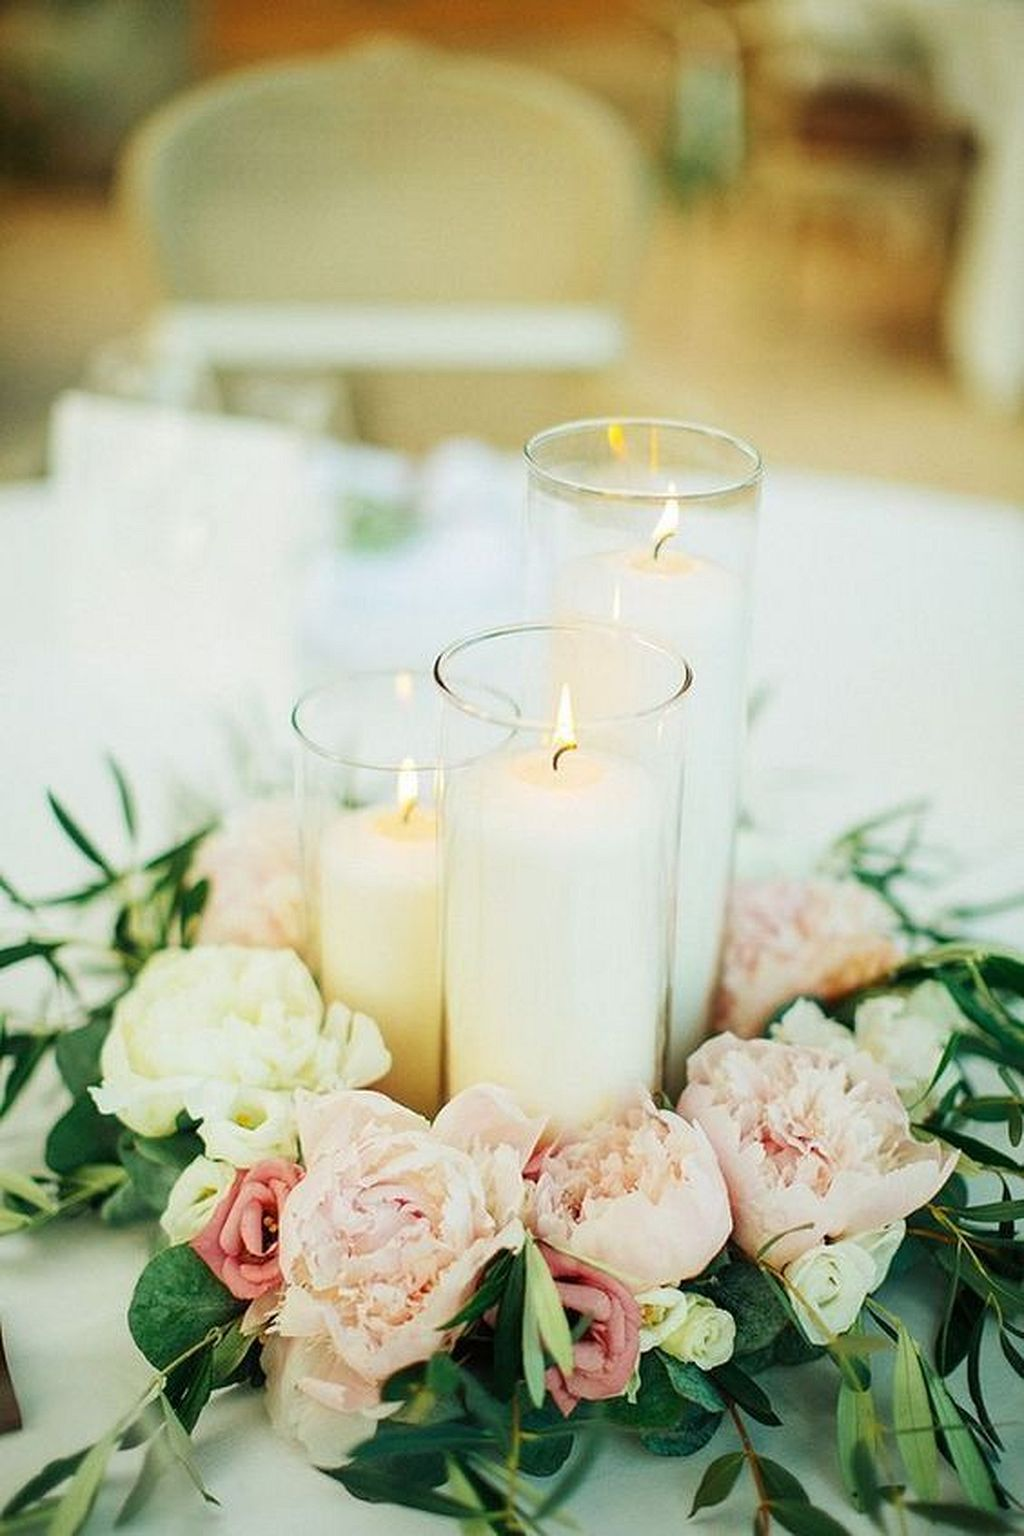 71 unique wedding centerpieces 26 | Unique wedding centerpieces ...